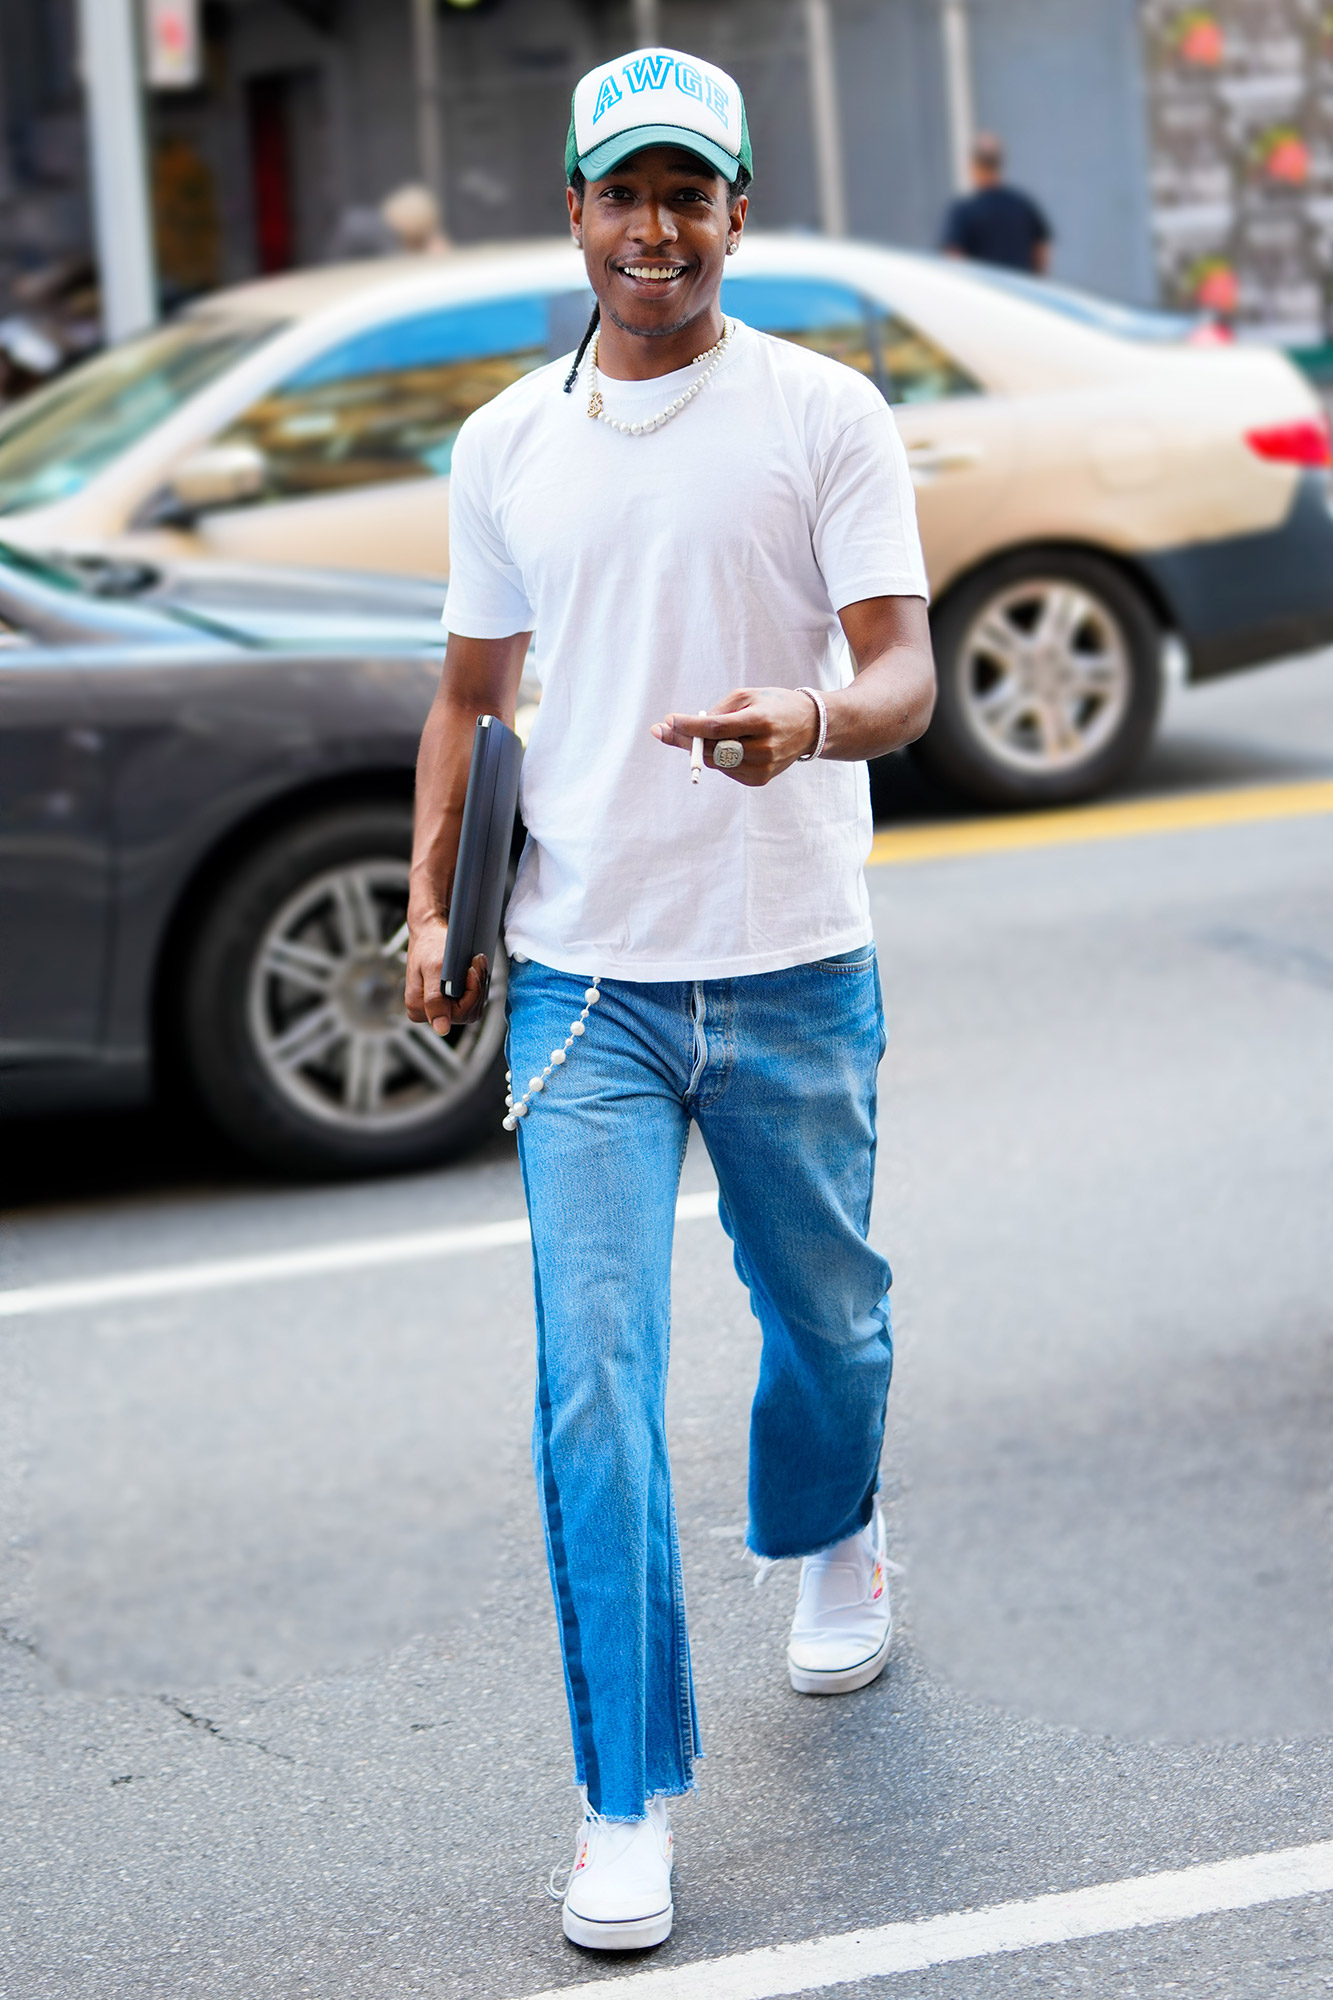 A$AP Rocky is seen on June 30, 2021 in New York City